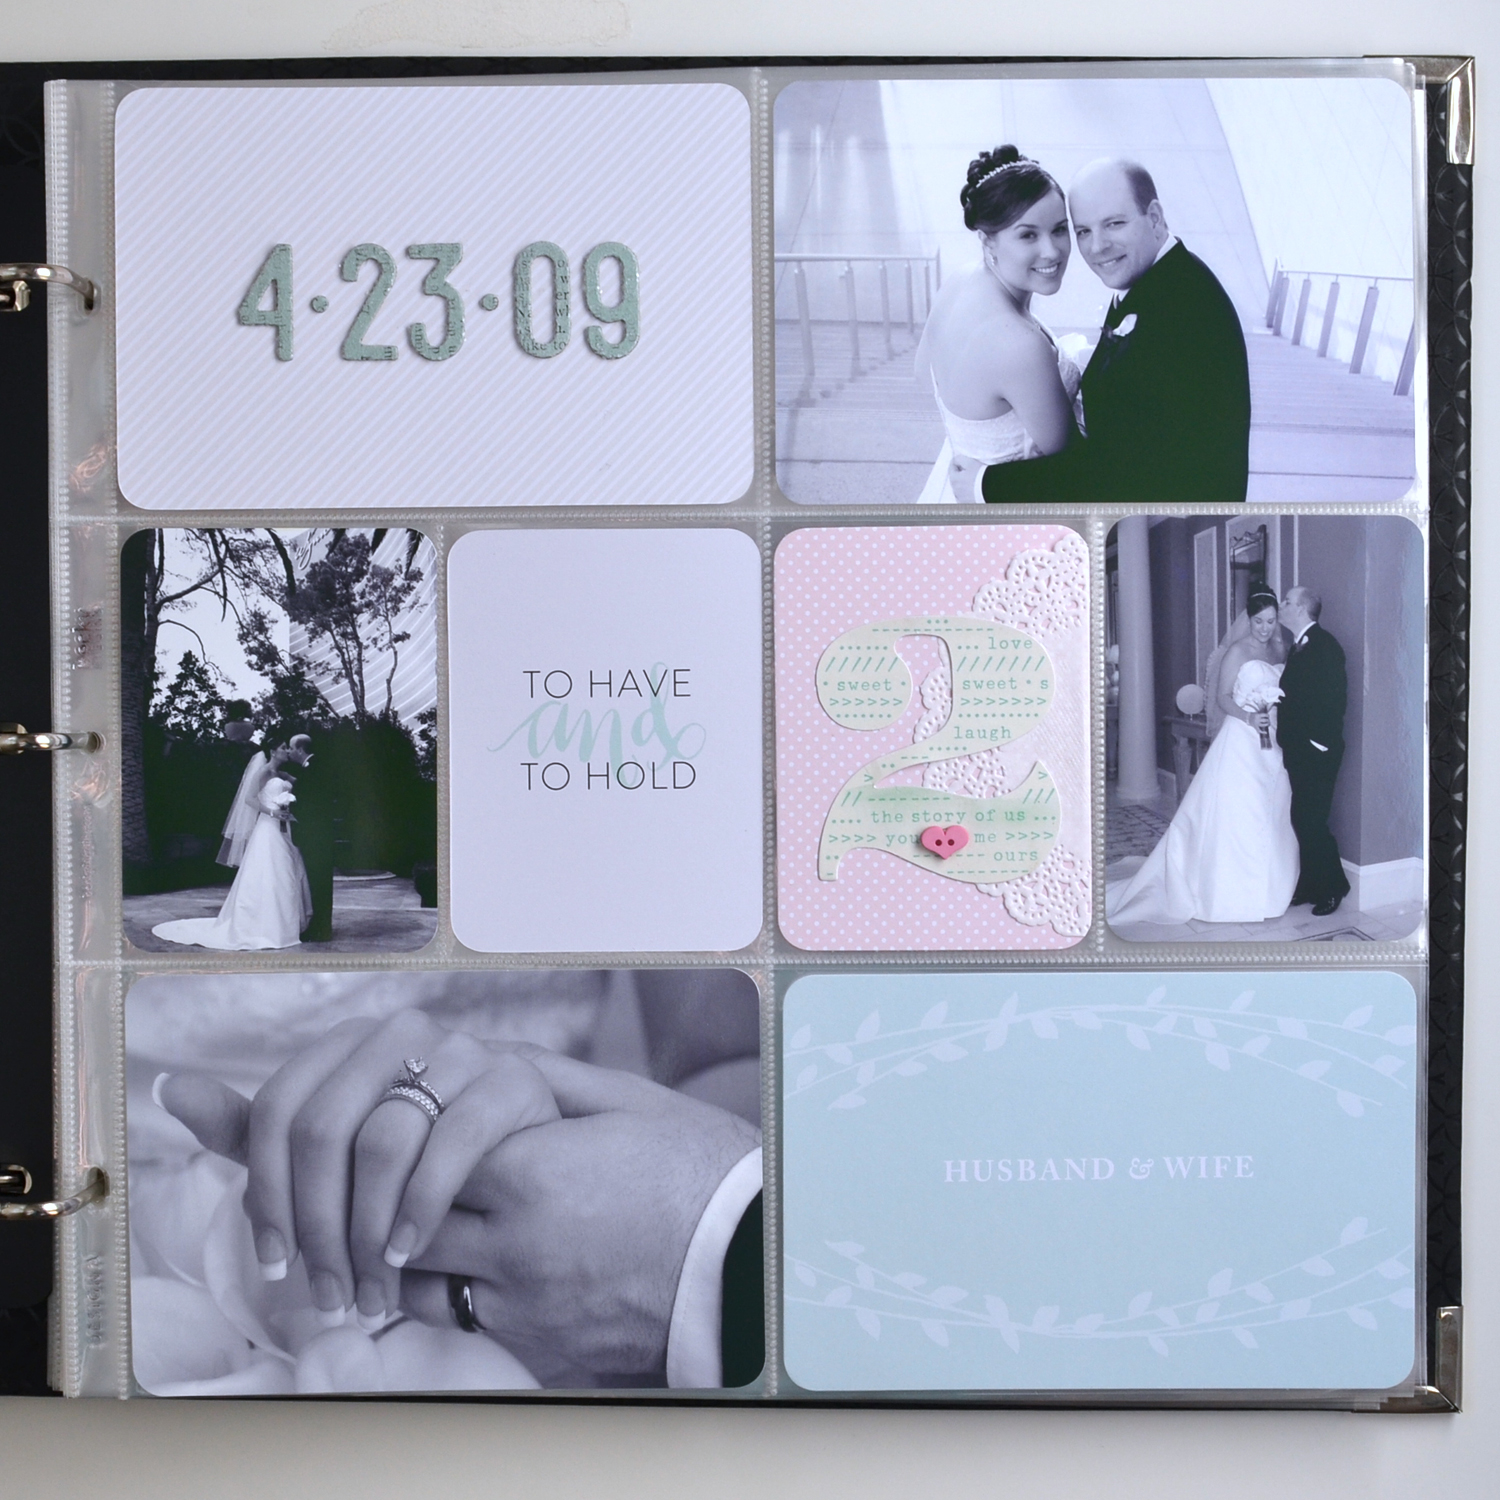 Wedding Album Titles